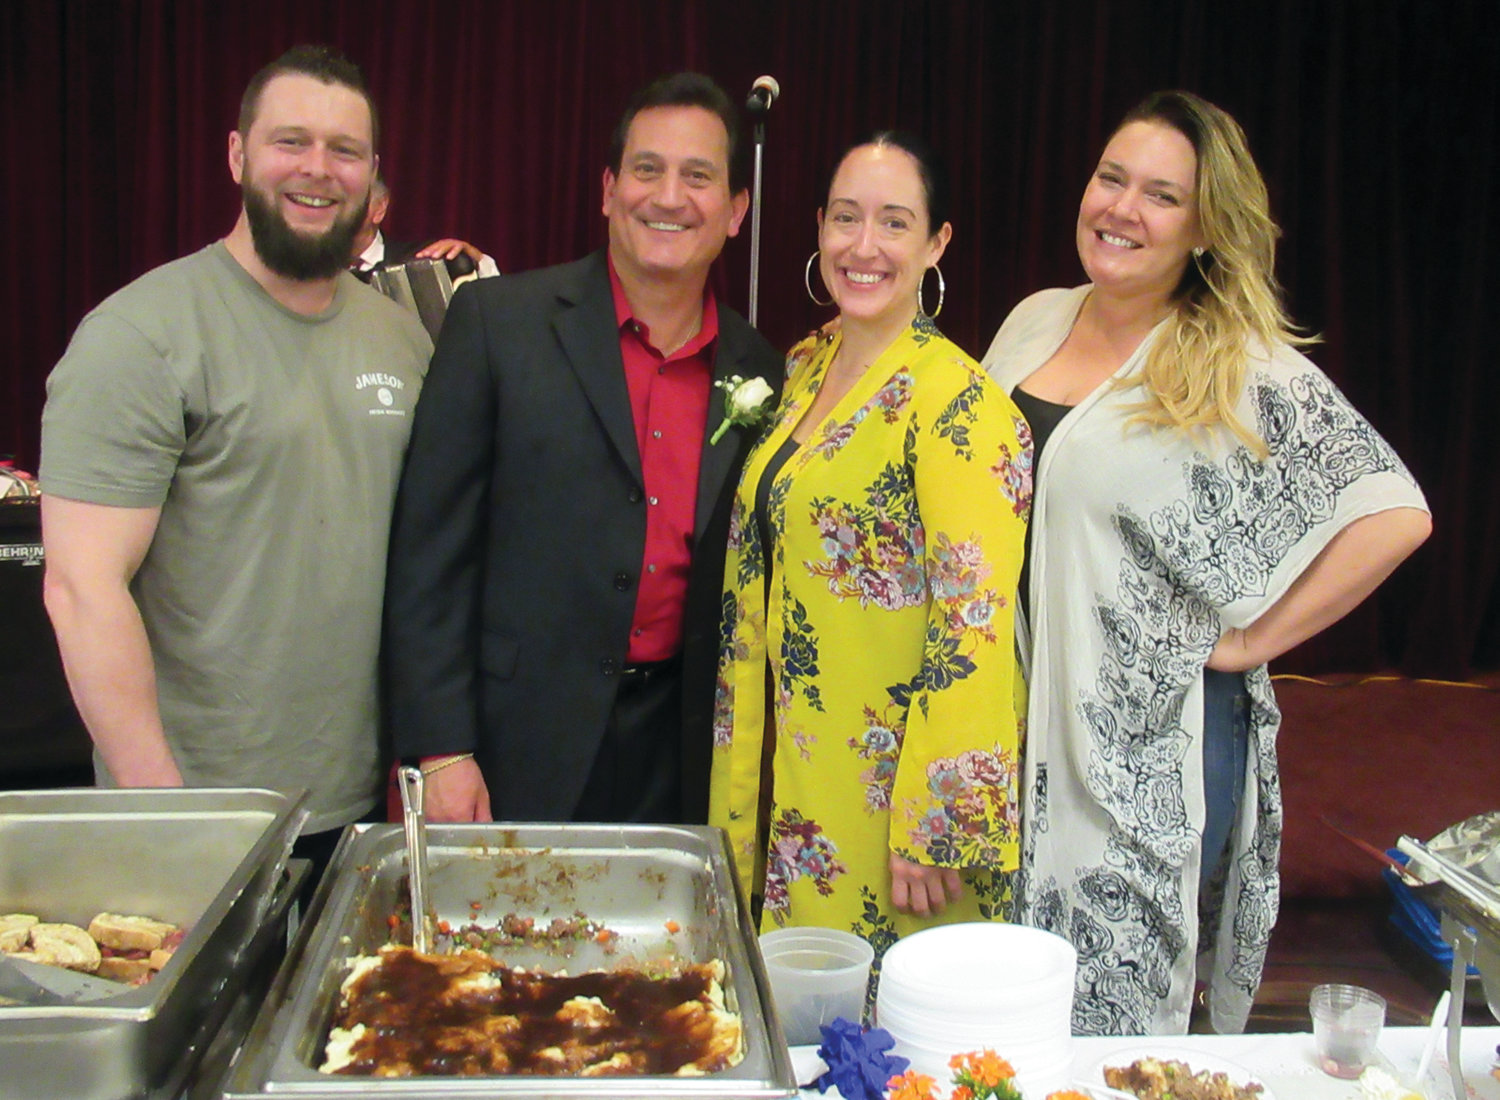 GINA'S GANG: Gina Musto (right), who owns and operates Cucina Rustica in Cranston, is joined by news anchor Mike Montecalvo, Brett Malenfant and Kelly Jackson during Sunday's Primavera in Johnston.